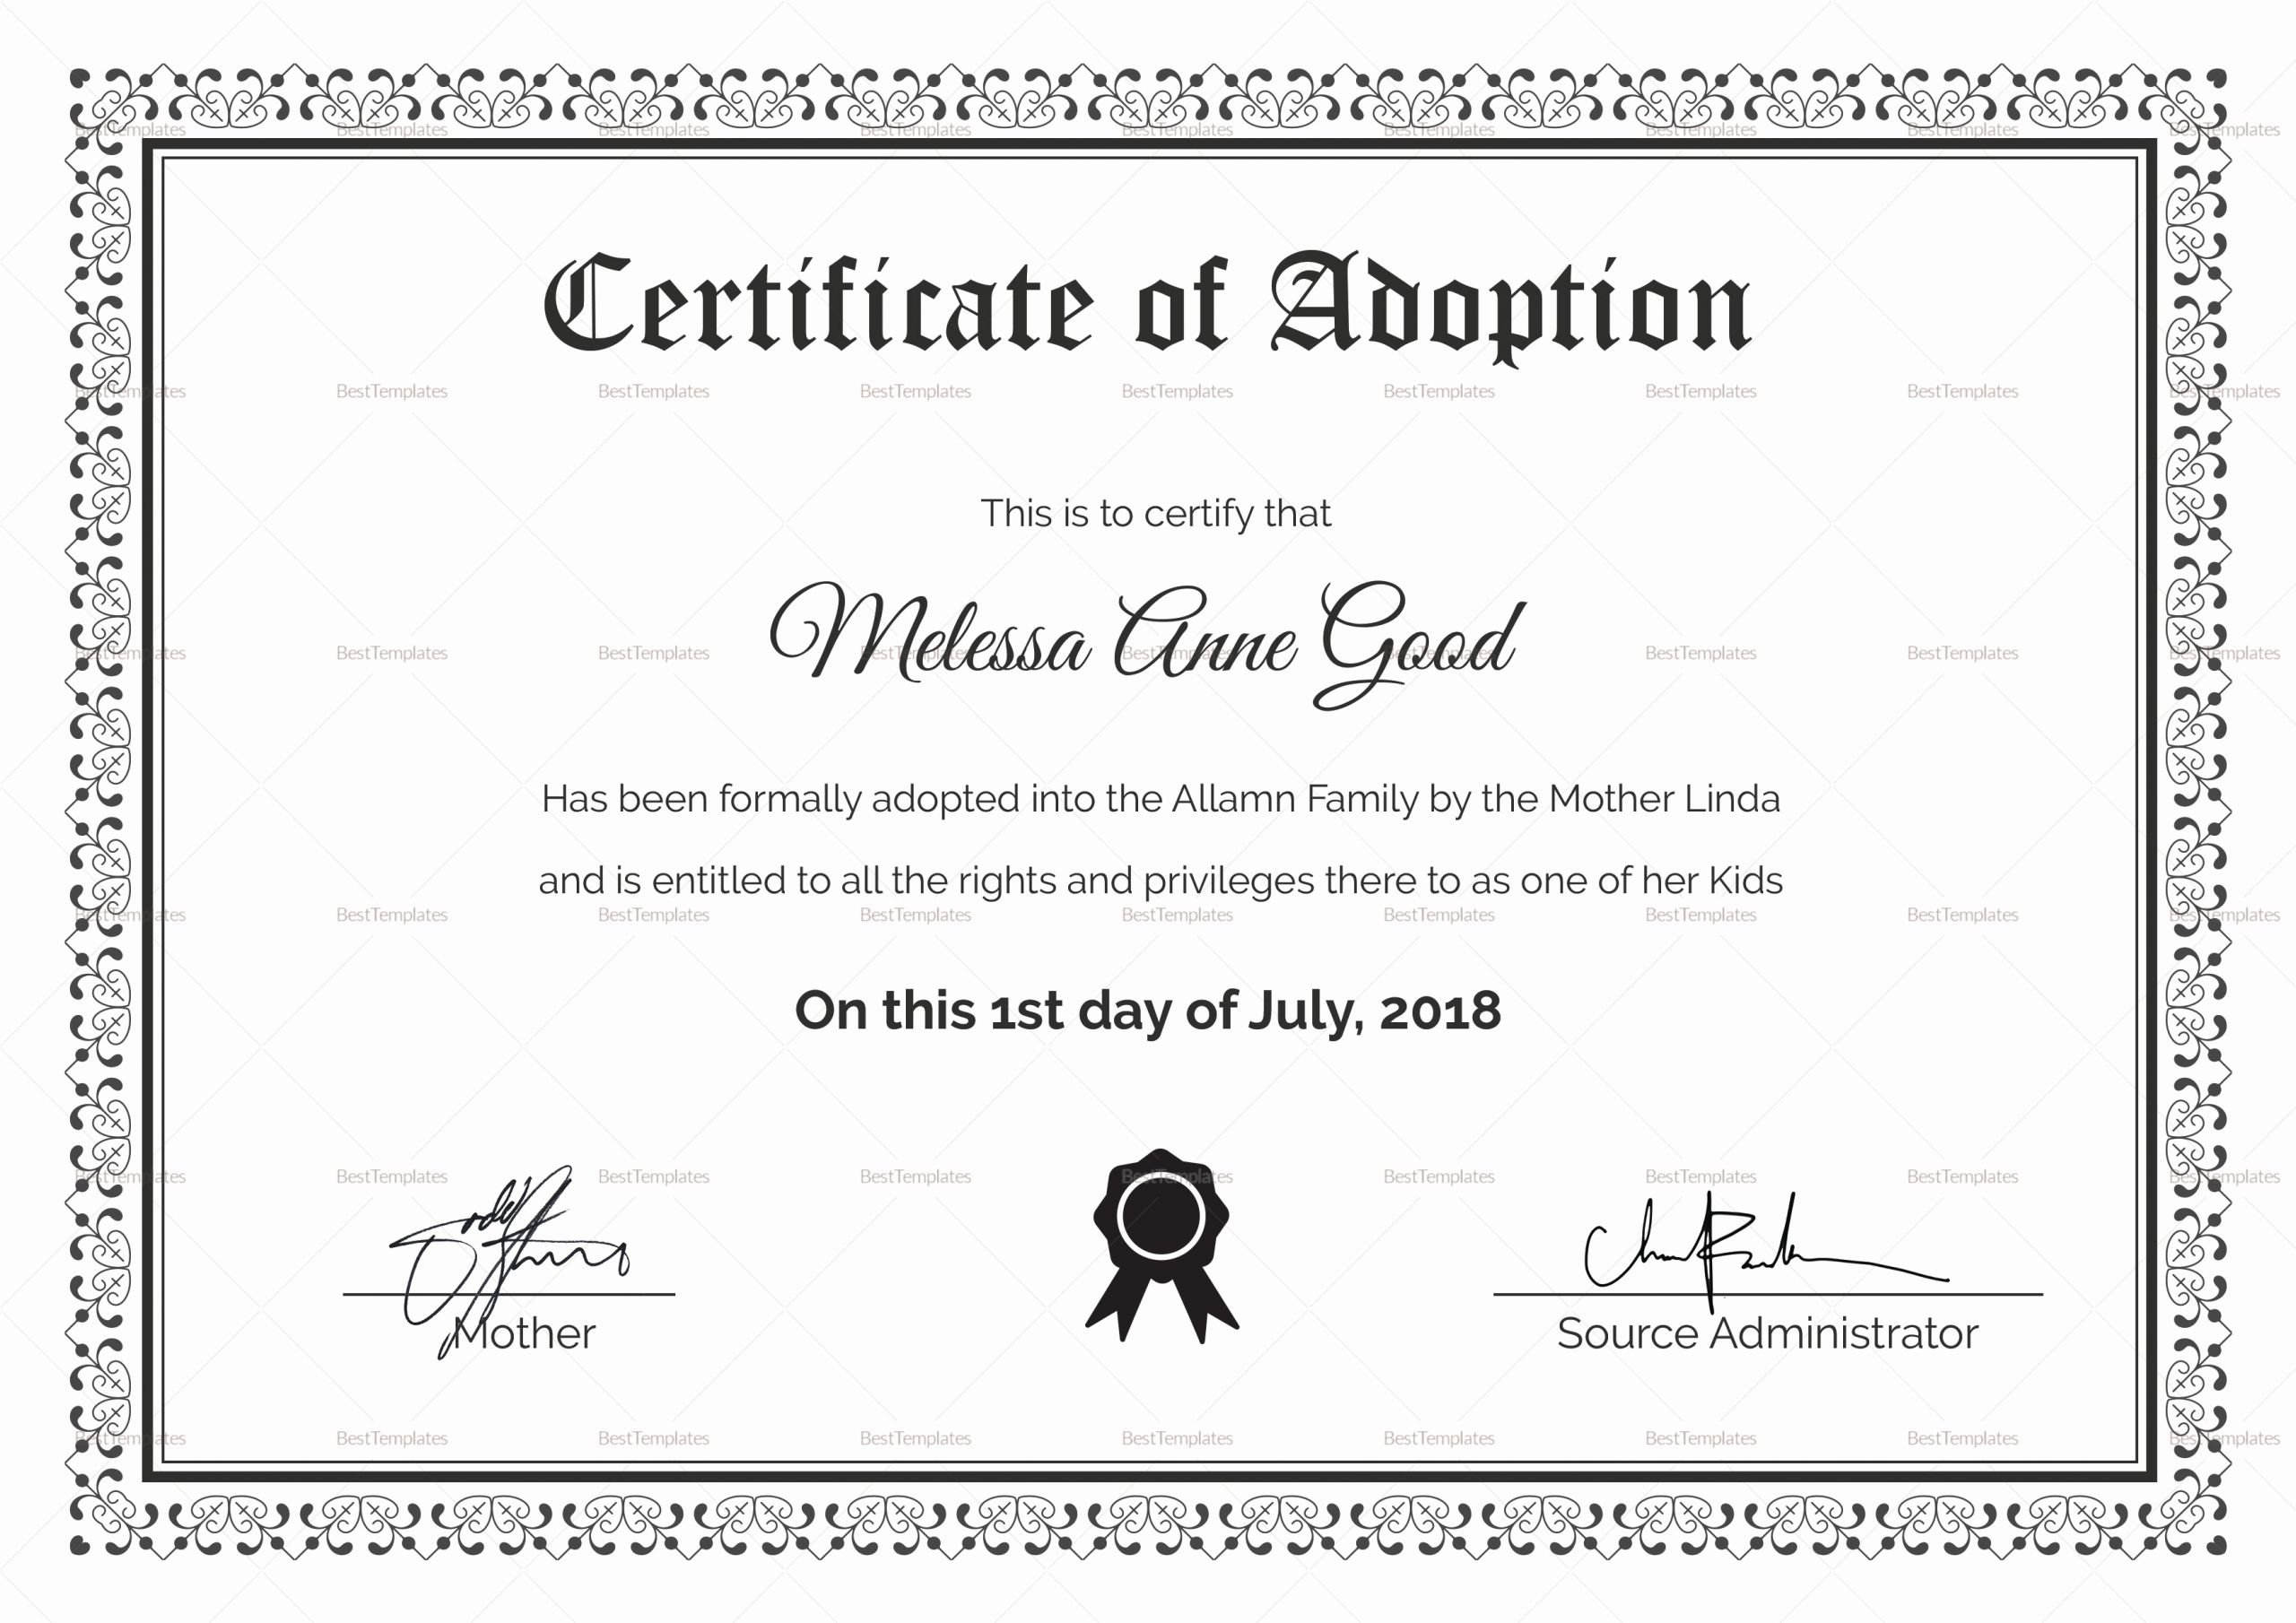 Adoption Certificate Template Word Lovely Adoption Certificate Design Template In Psd Word